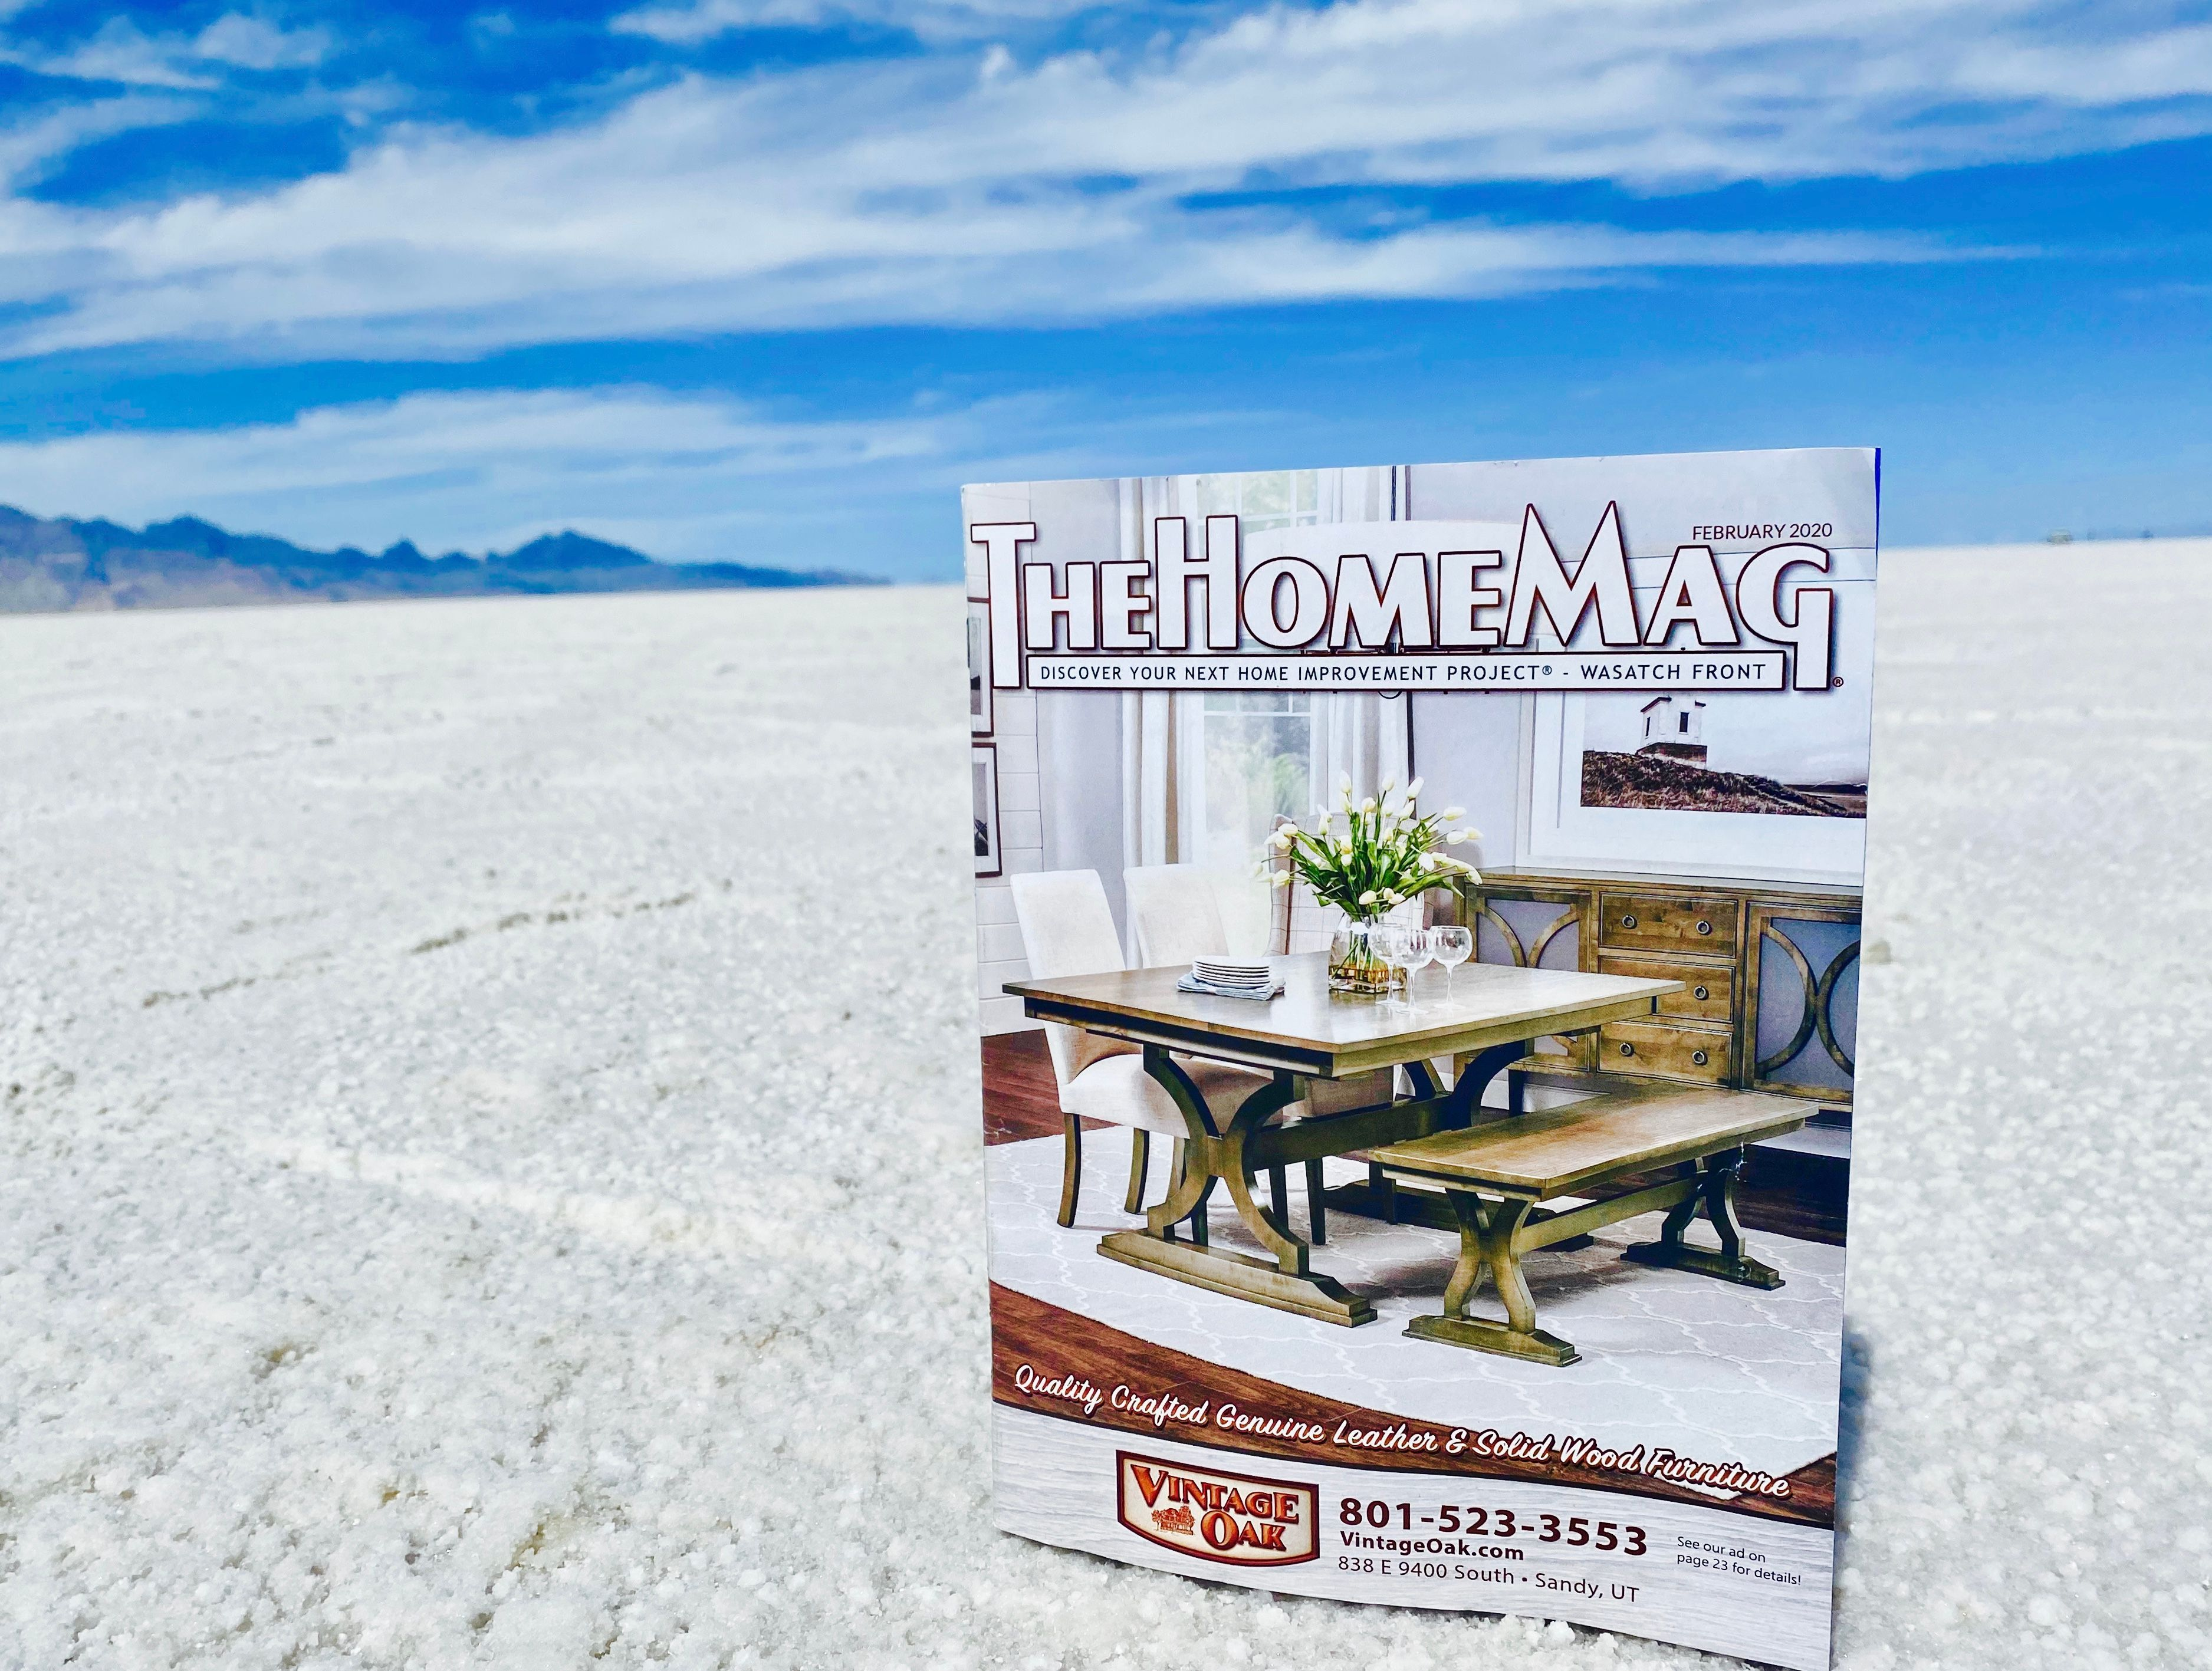 Did you know that our magazines mail to 9,000,000 homes monthly in 27 states? TheHomeMag is a collection of 60 corporate, franchise, and affiliate-owned publications.we are America's largest home improvement targeted direct mail product. Your business would greatly benefit from TheHomeMag. For more information click the link in our bio. . . . . .  #mydiyhome #homedesigning #homedecoration  #homestyling #hometrends #instahome #thehomemag #TheHomeMagUt #utahhomemag #supportsmall #supportutah